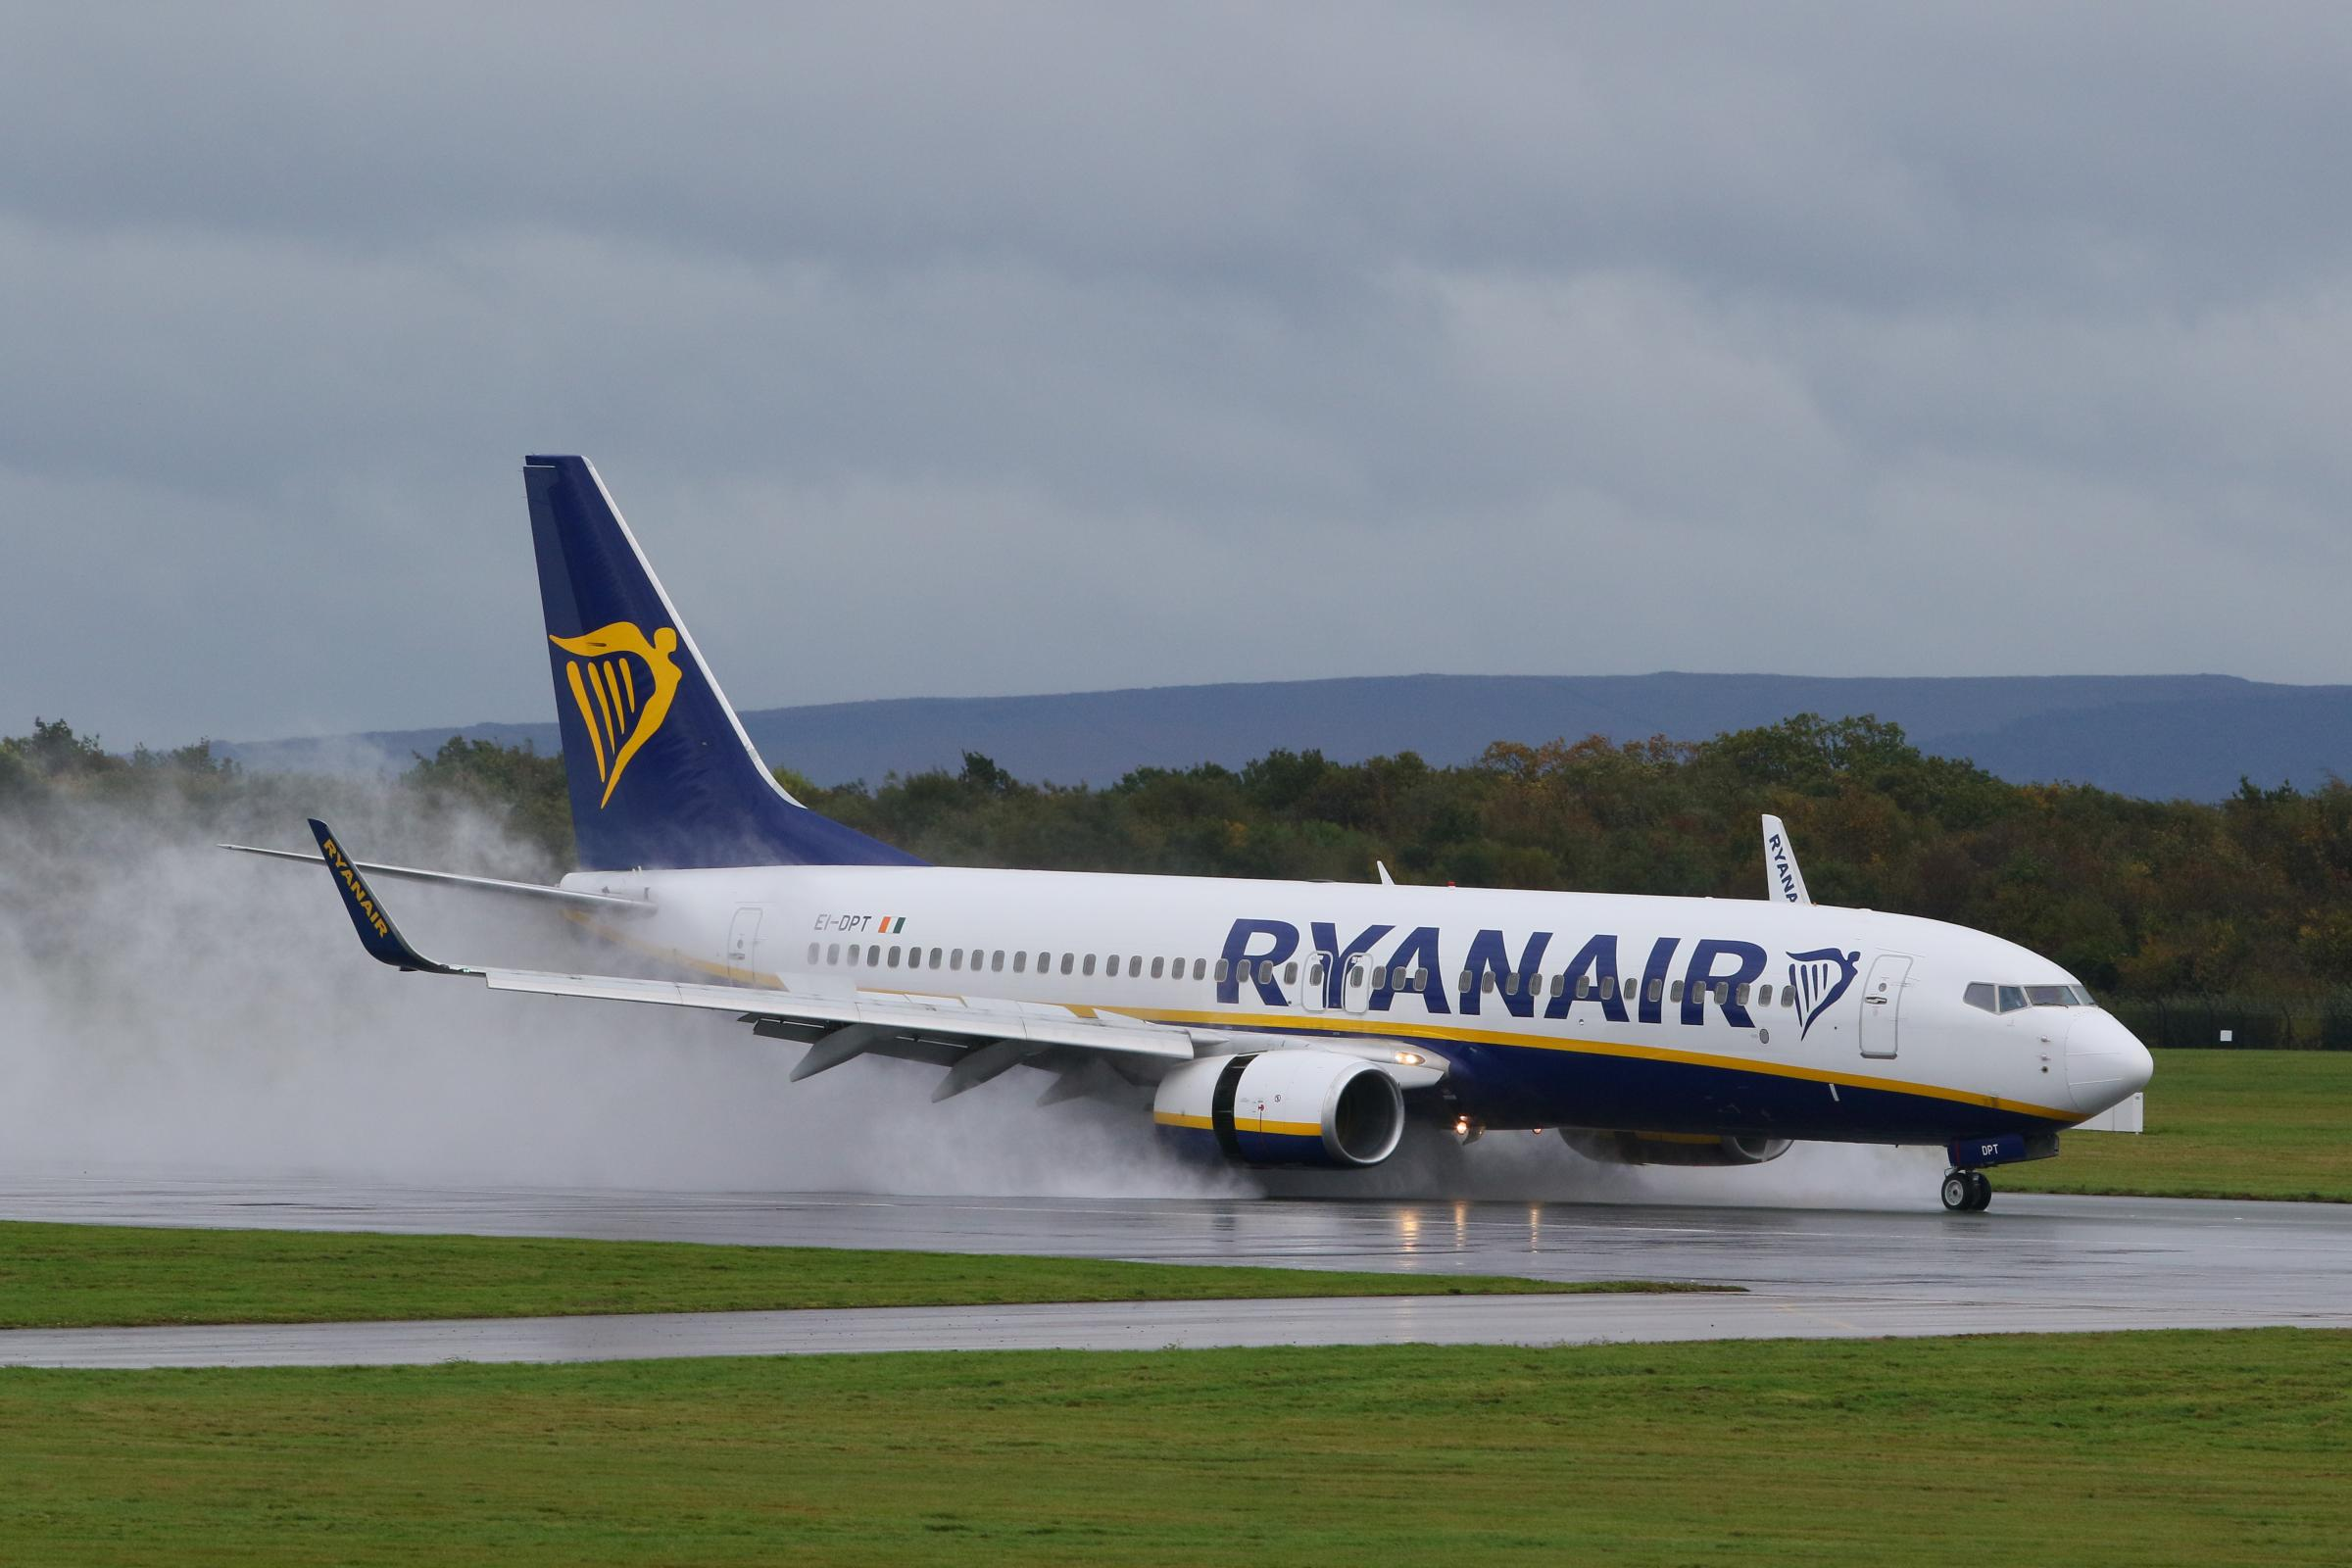 Ryanair faces backlash over racist incident on flight